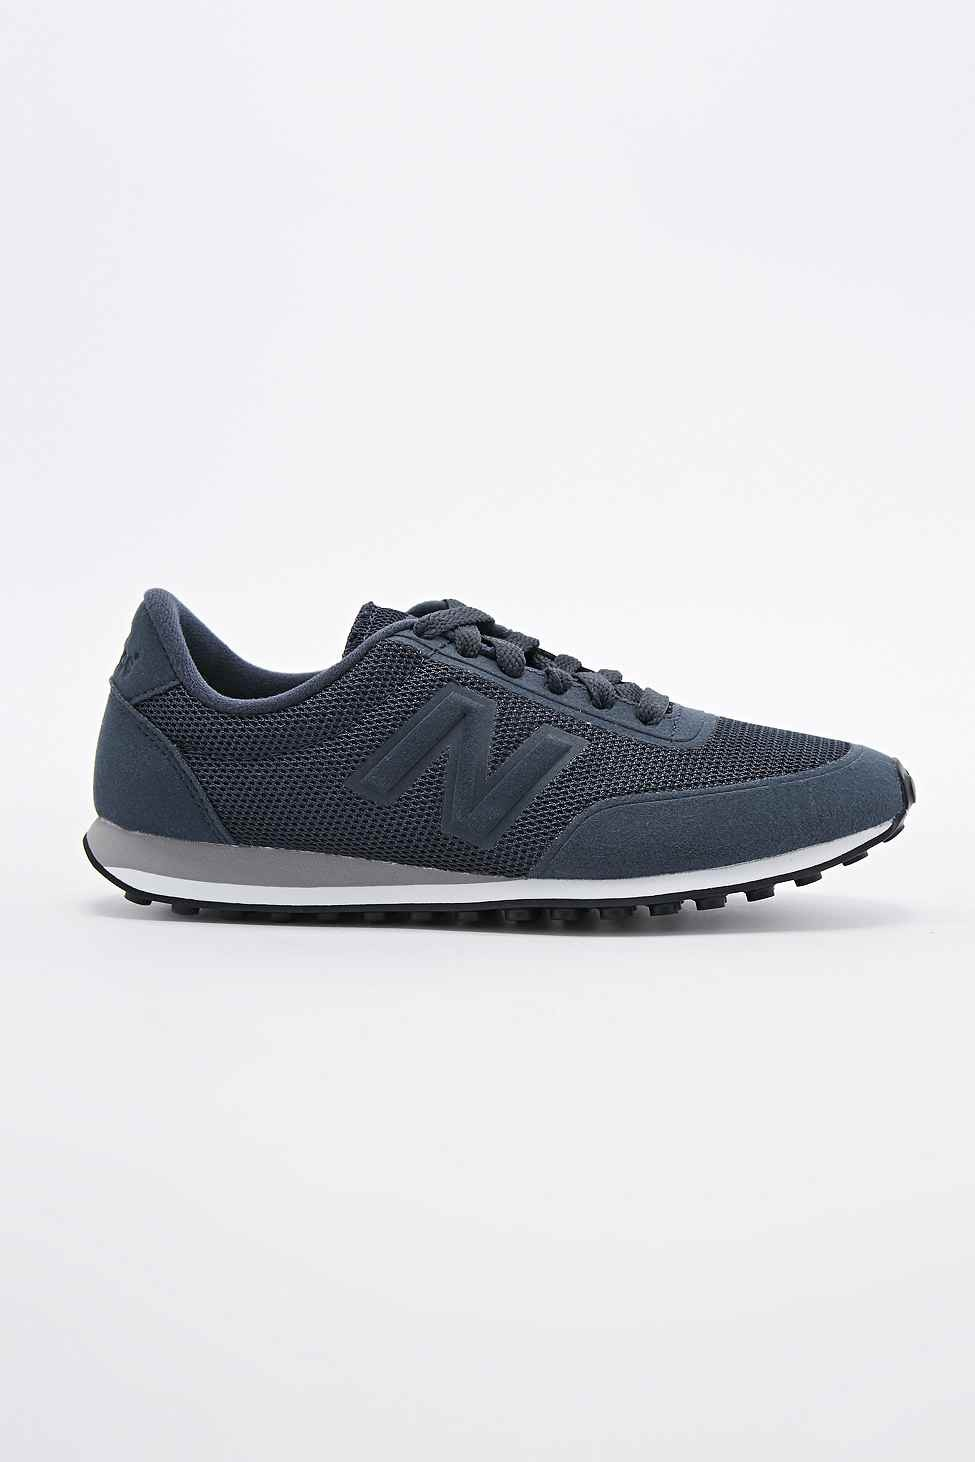 New Balance 410 Mesh Sneakers Pour Femme Marine